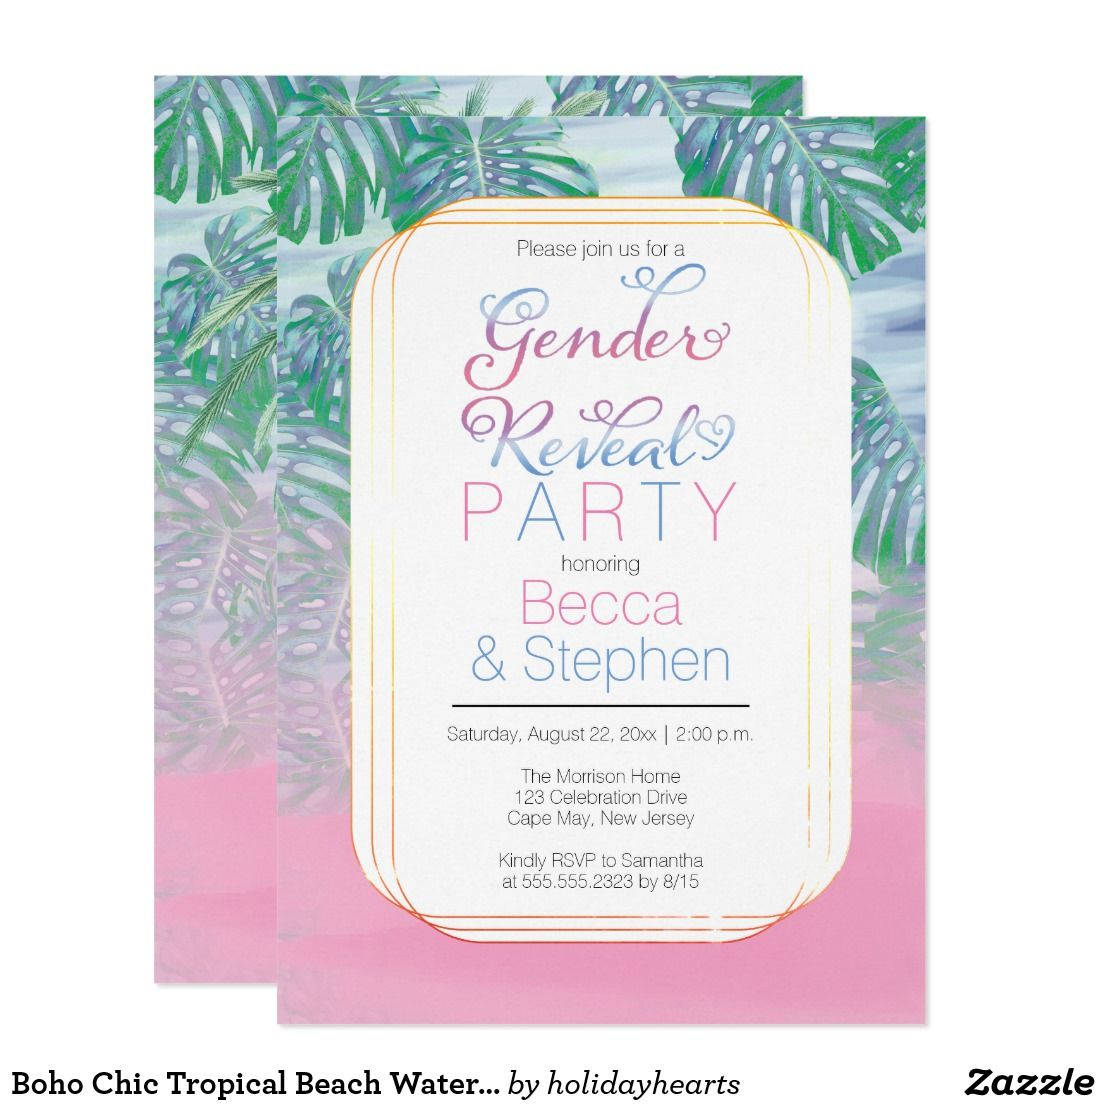 Boho Chic Tropical Beach Watercolor Gender Reveal Invitation